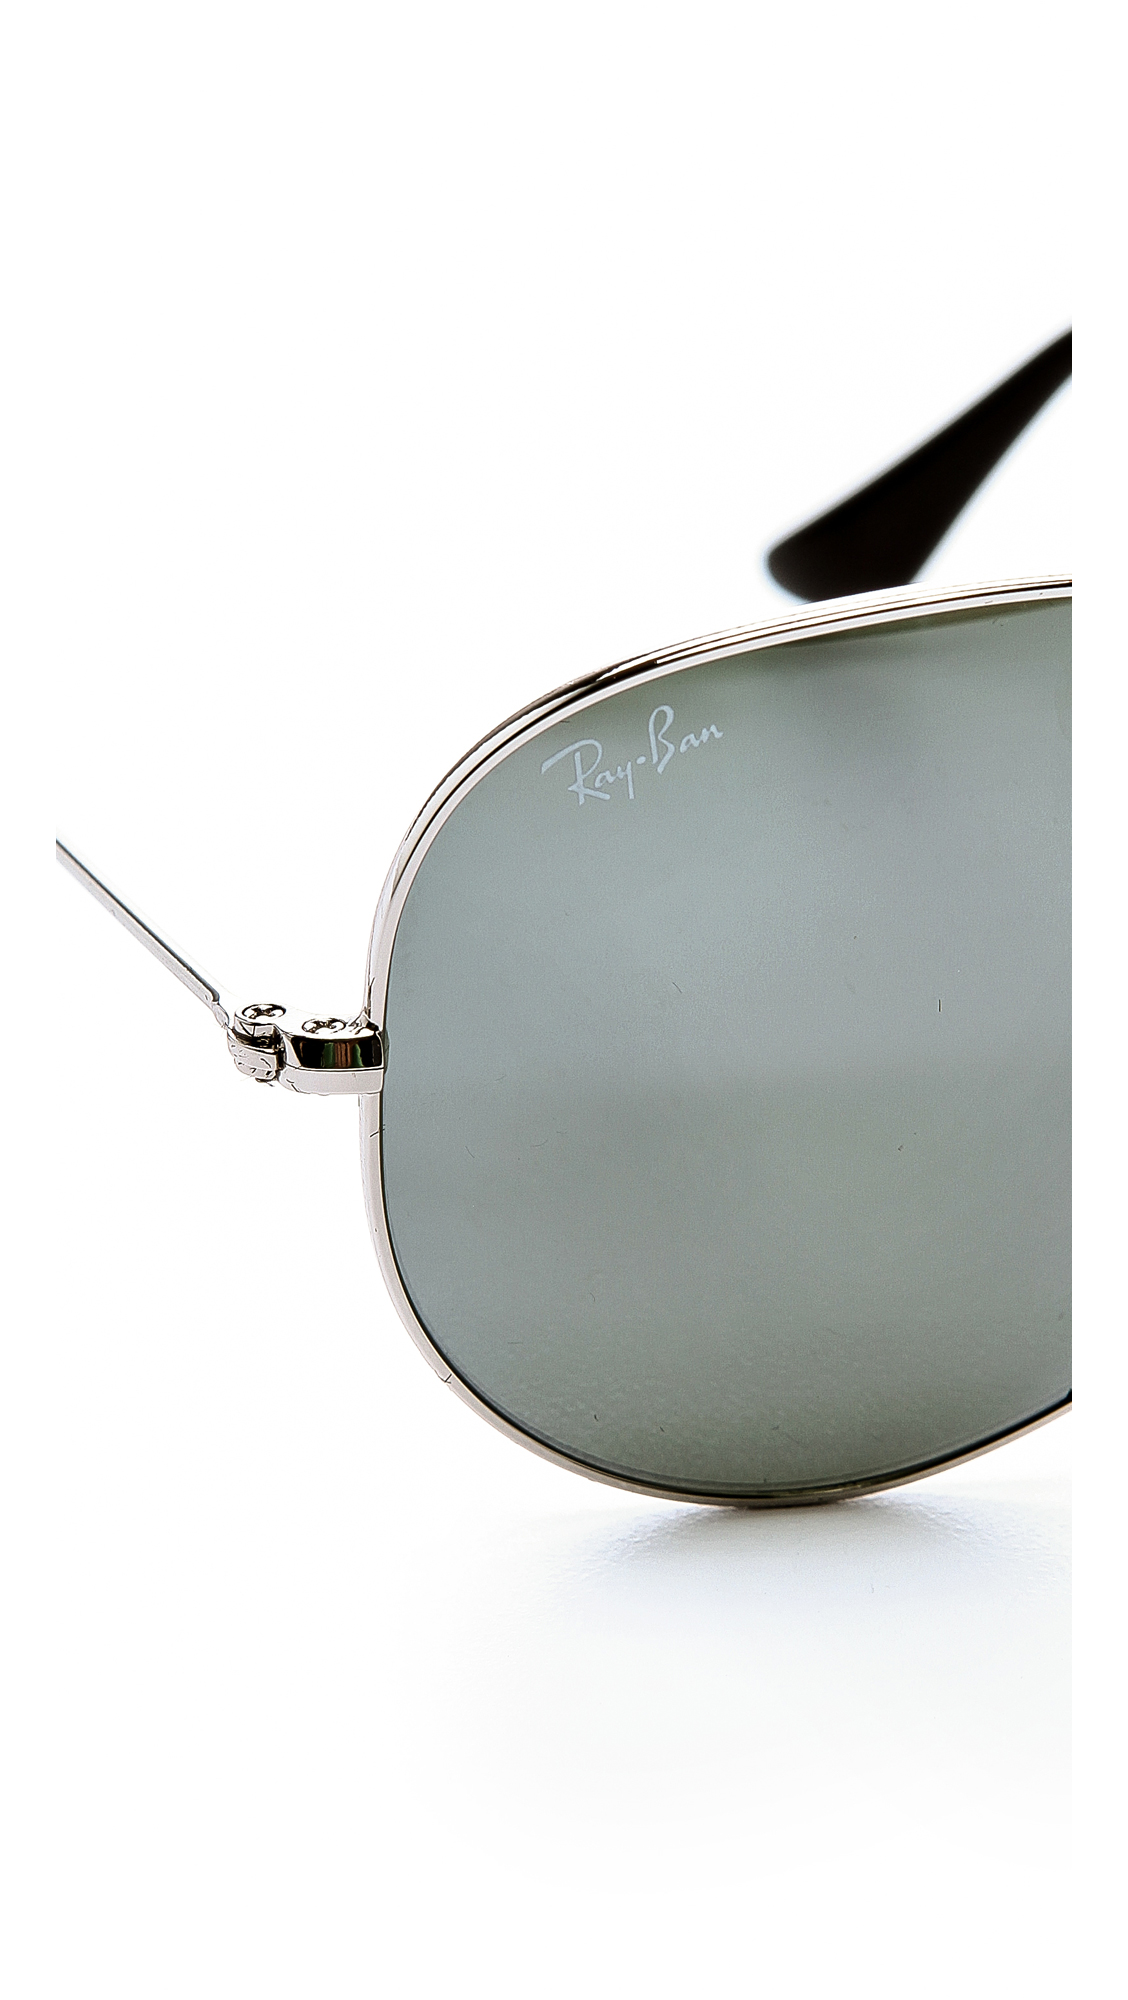 Ray-Ban Mirrored Original Aviator Sunglasses | SHOPBOP